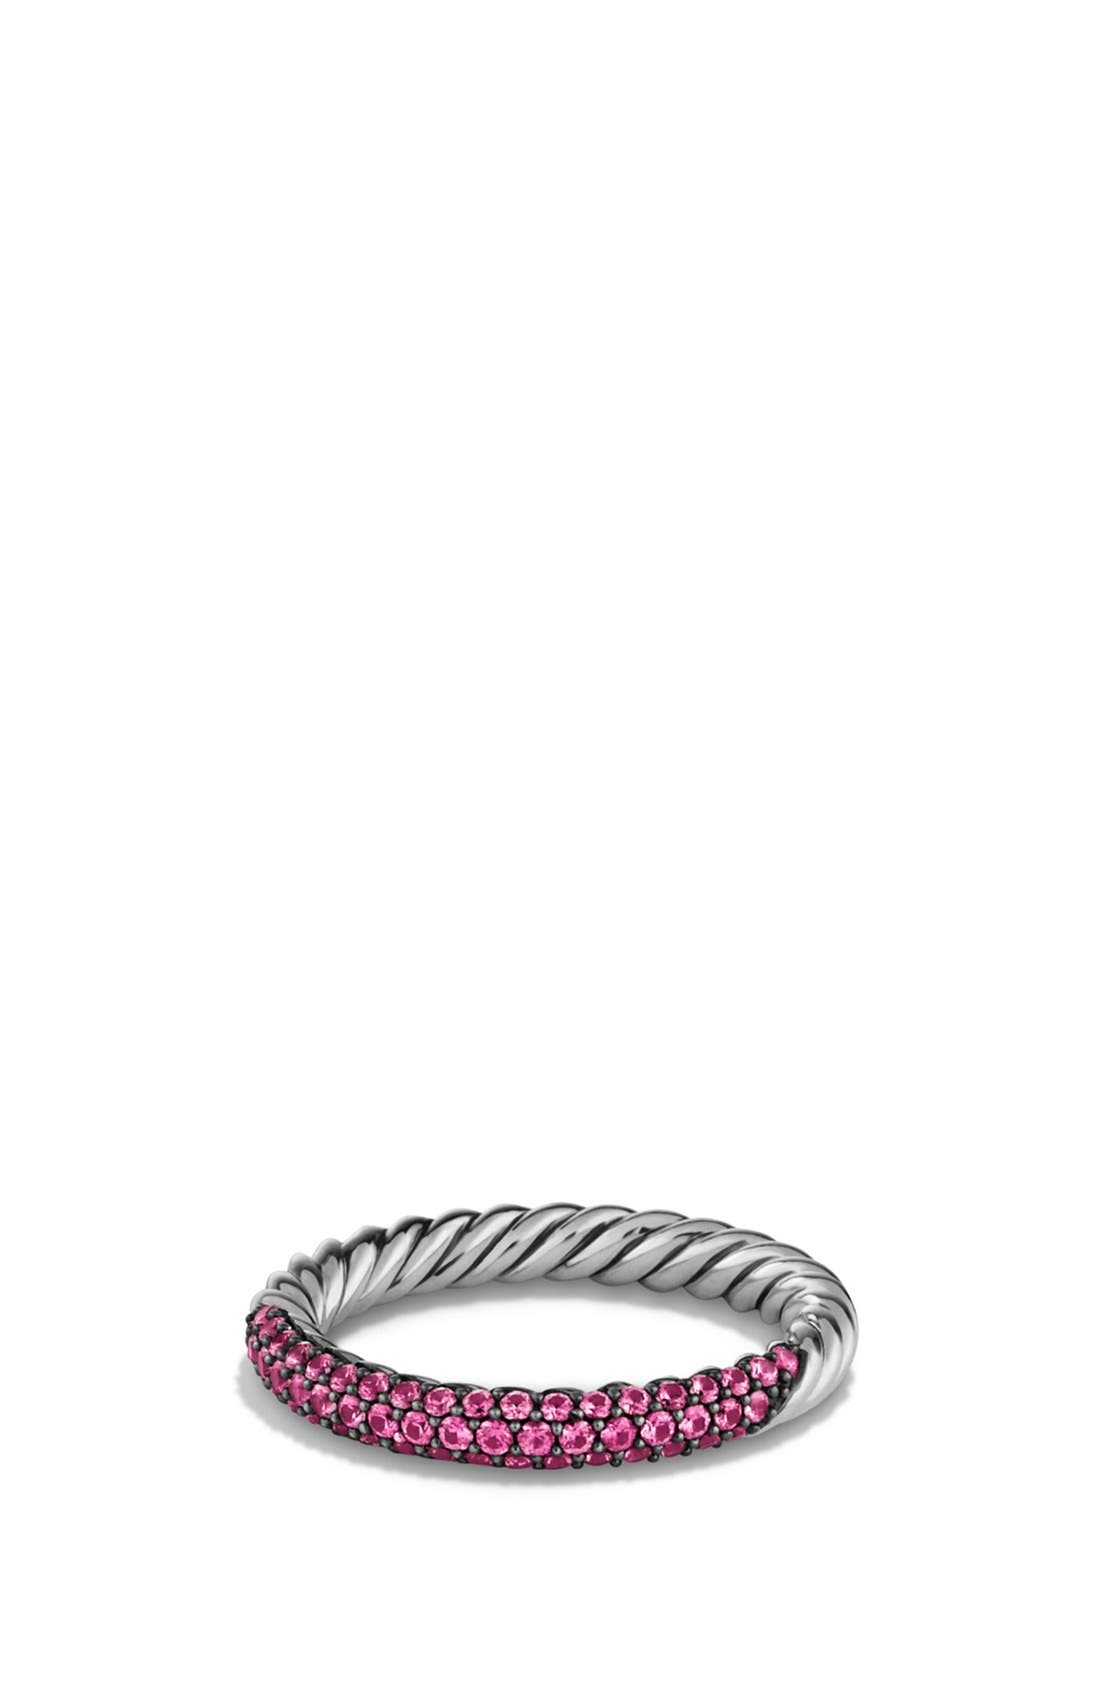 'Petite Pavé' Ring with Sapphires,                         Main,                         color, Pink Saphire